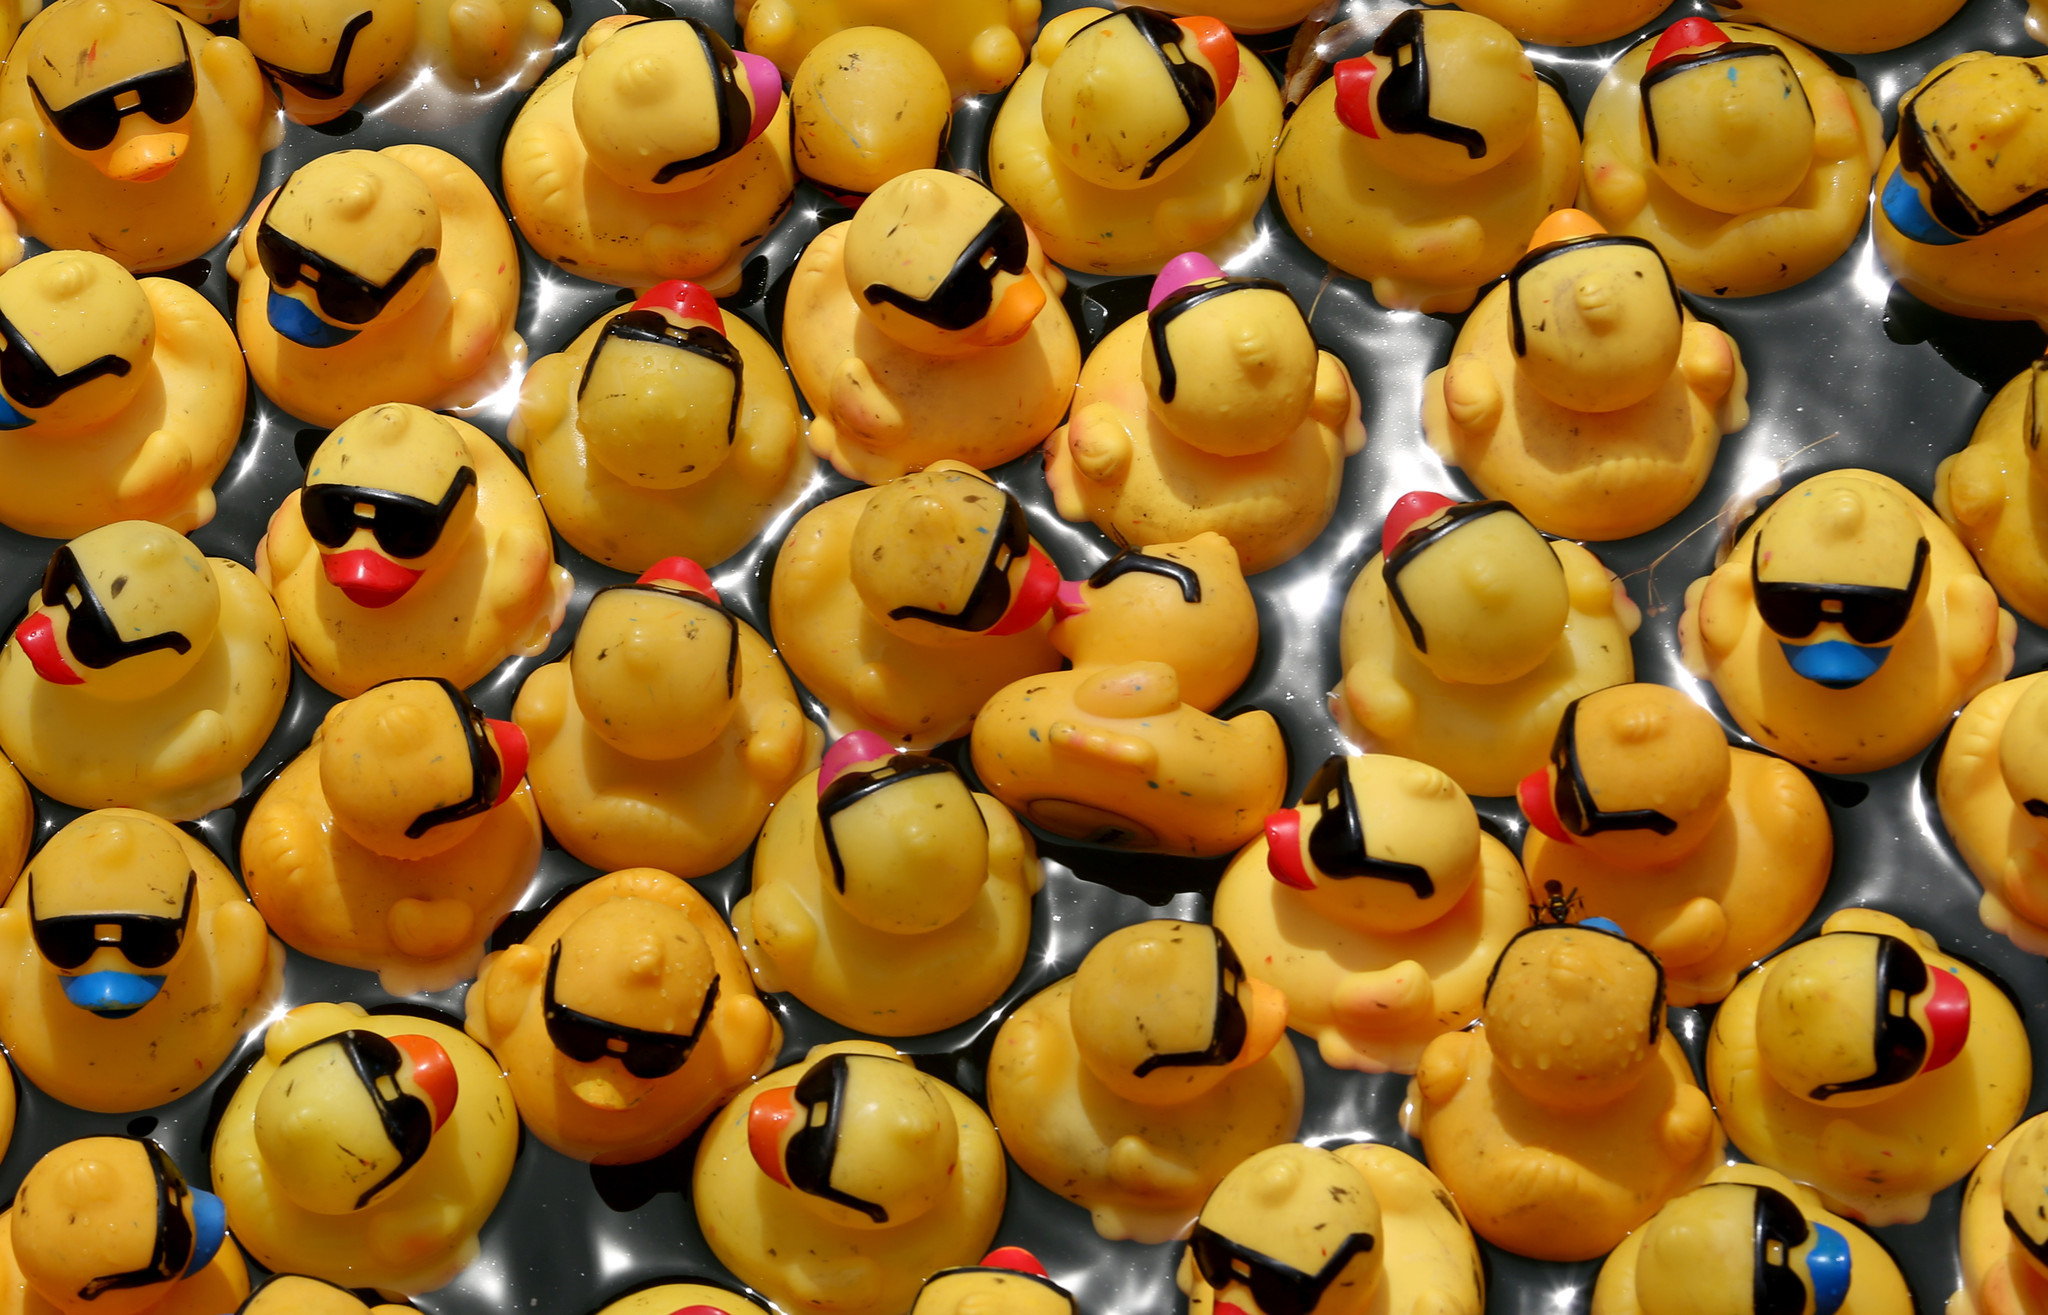 Rubber Duck Derby hits Chicago River - Chicago Tribune